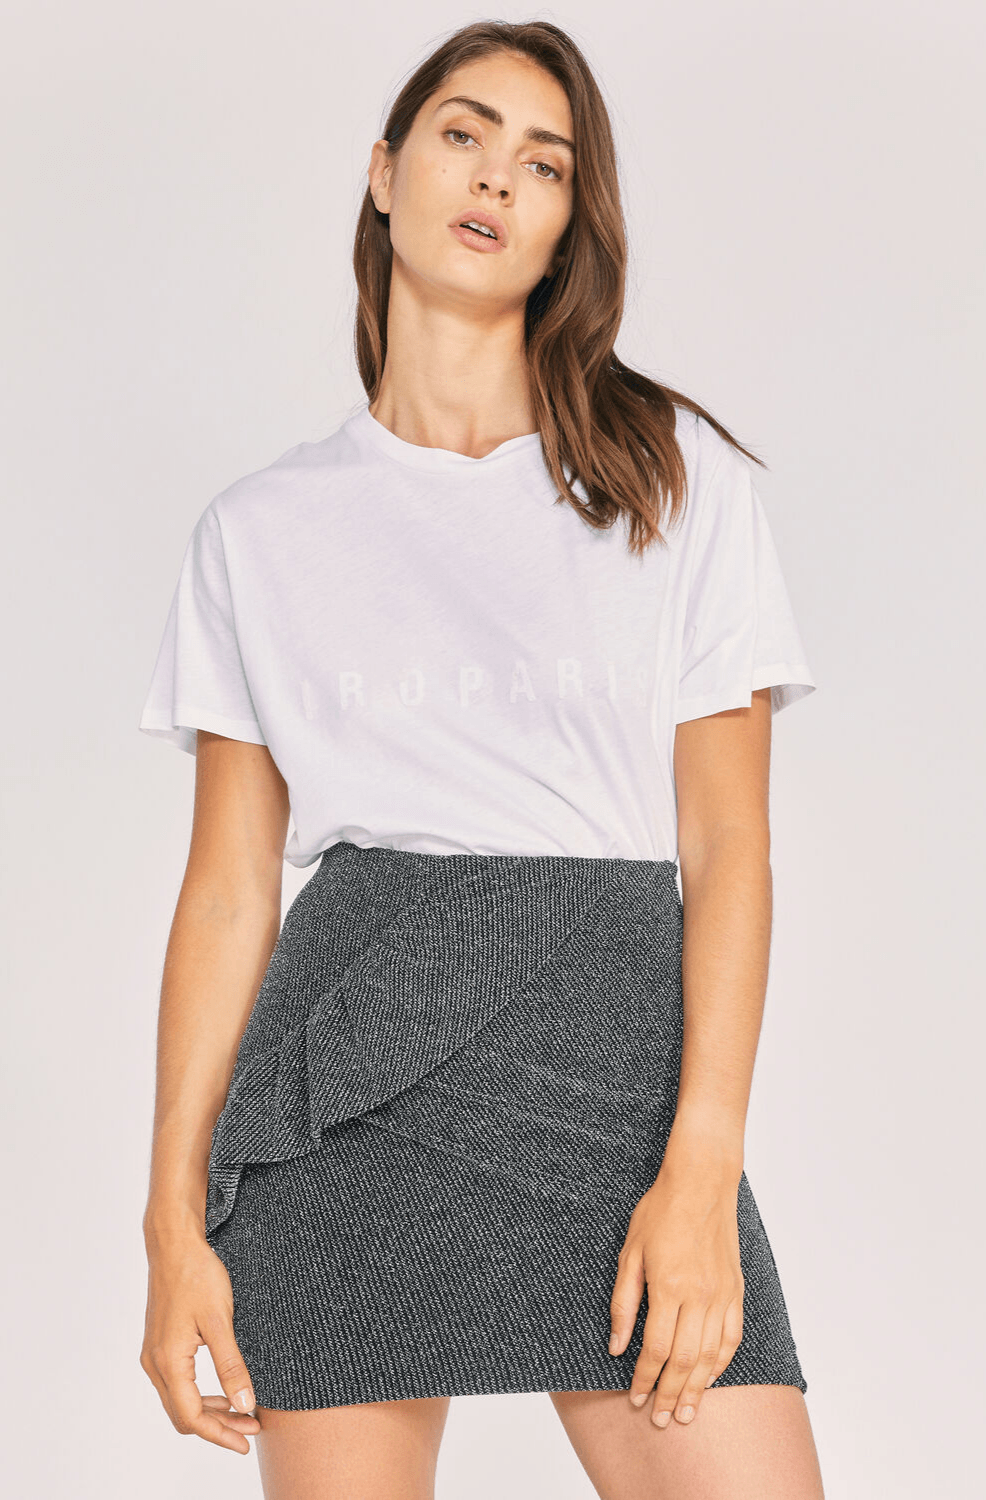 Lisko Skirt / Black Womens IRO